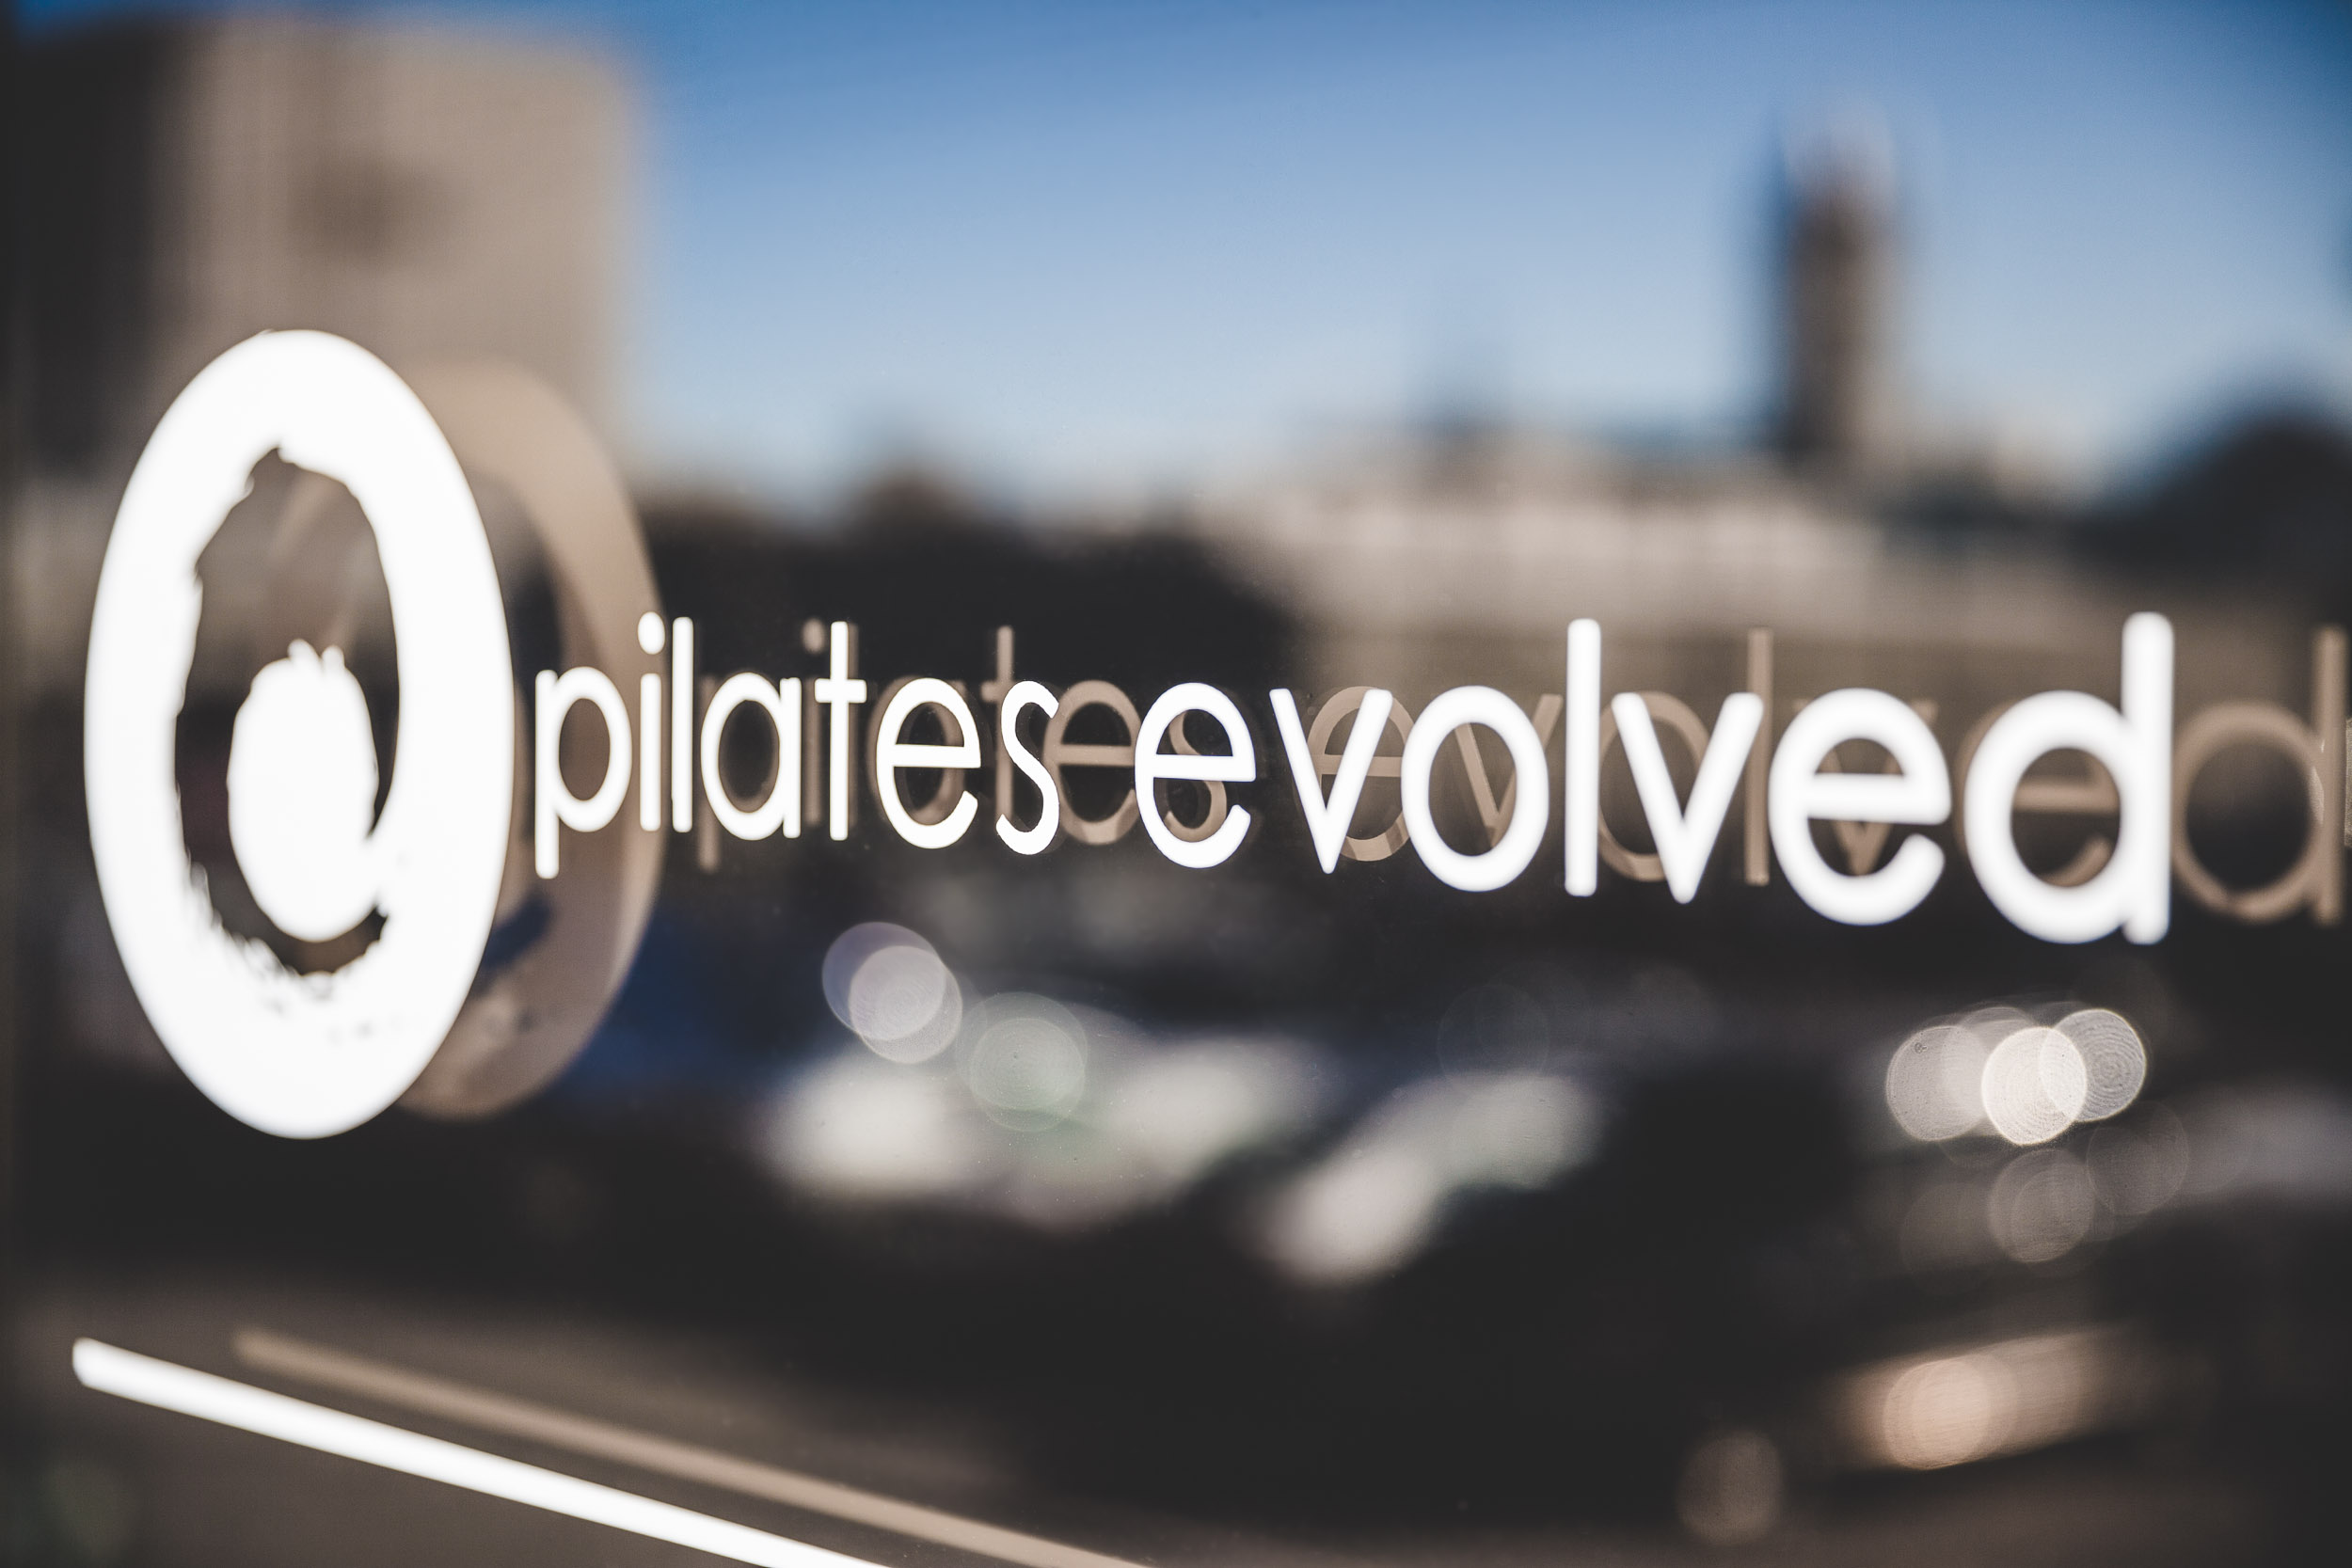 14006_Pilates_Evolved_379-Edit.jpg